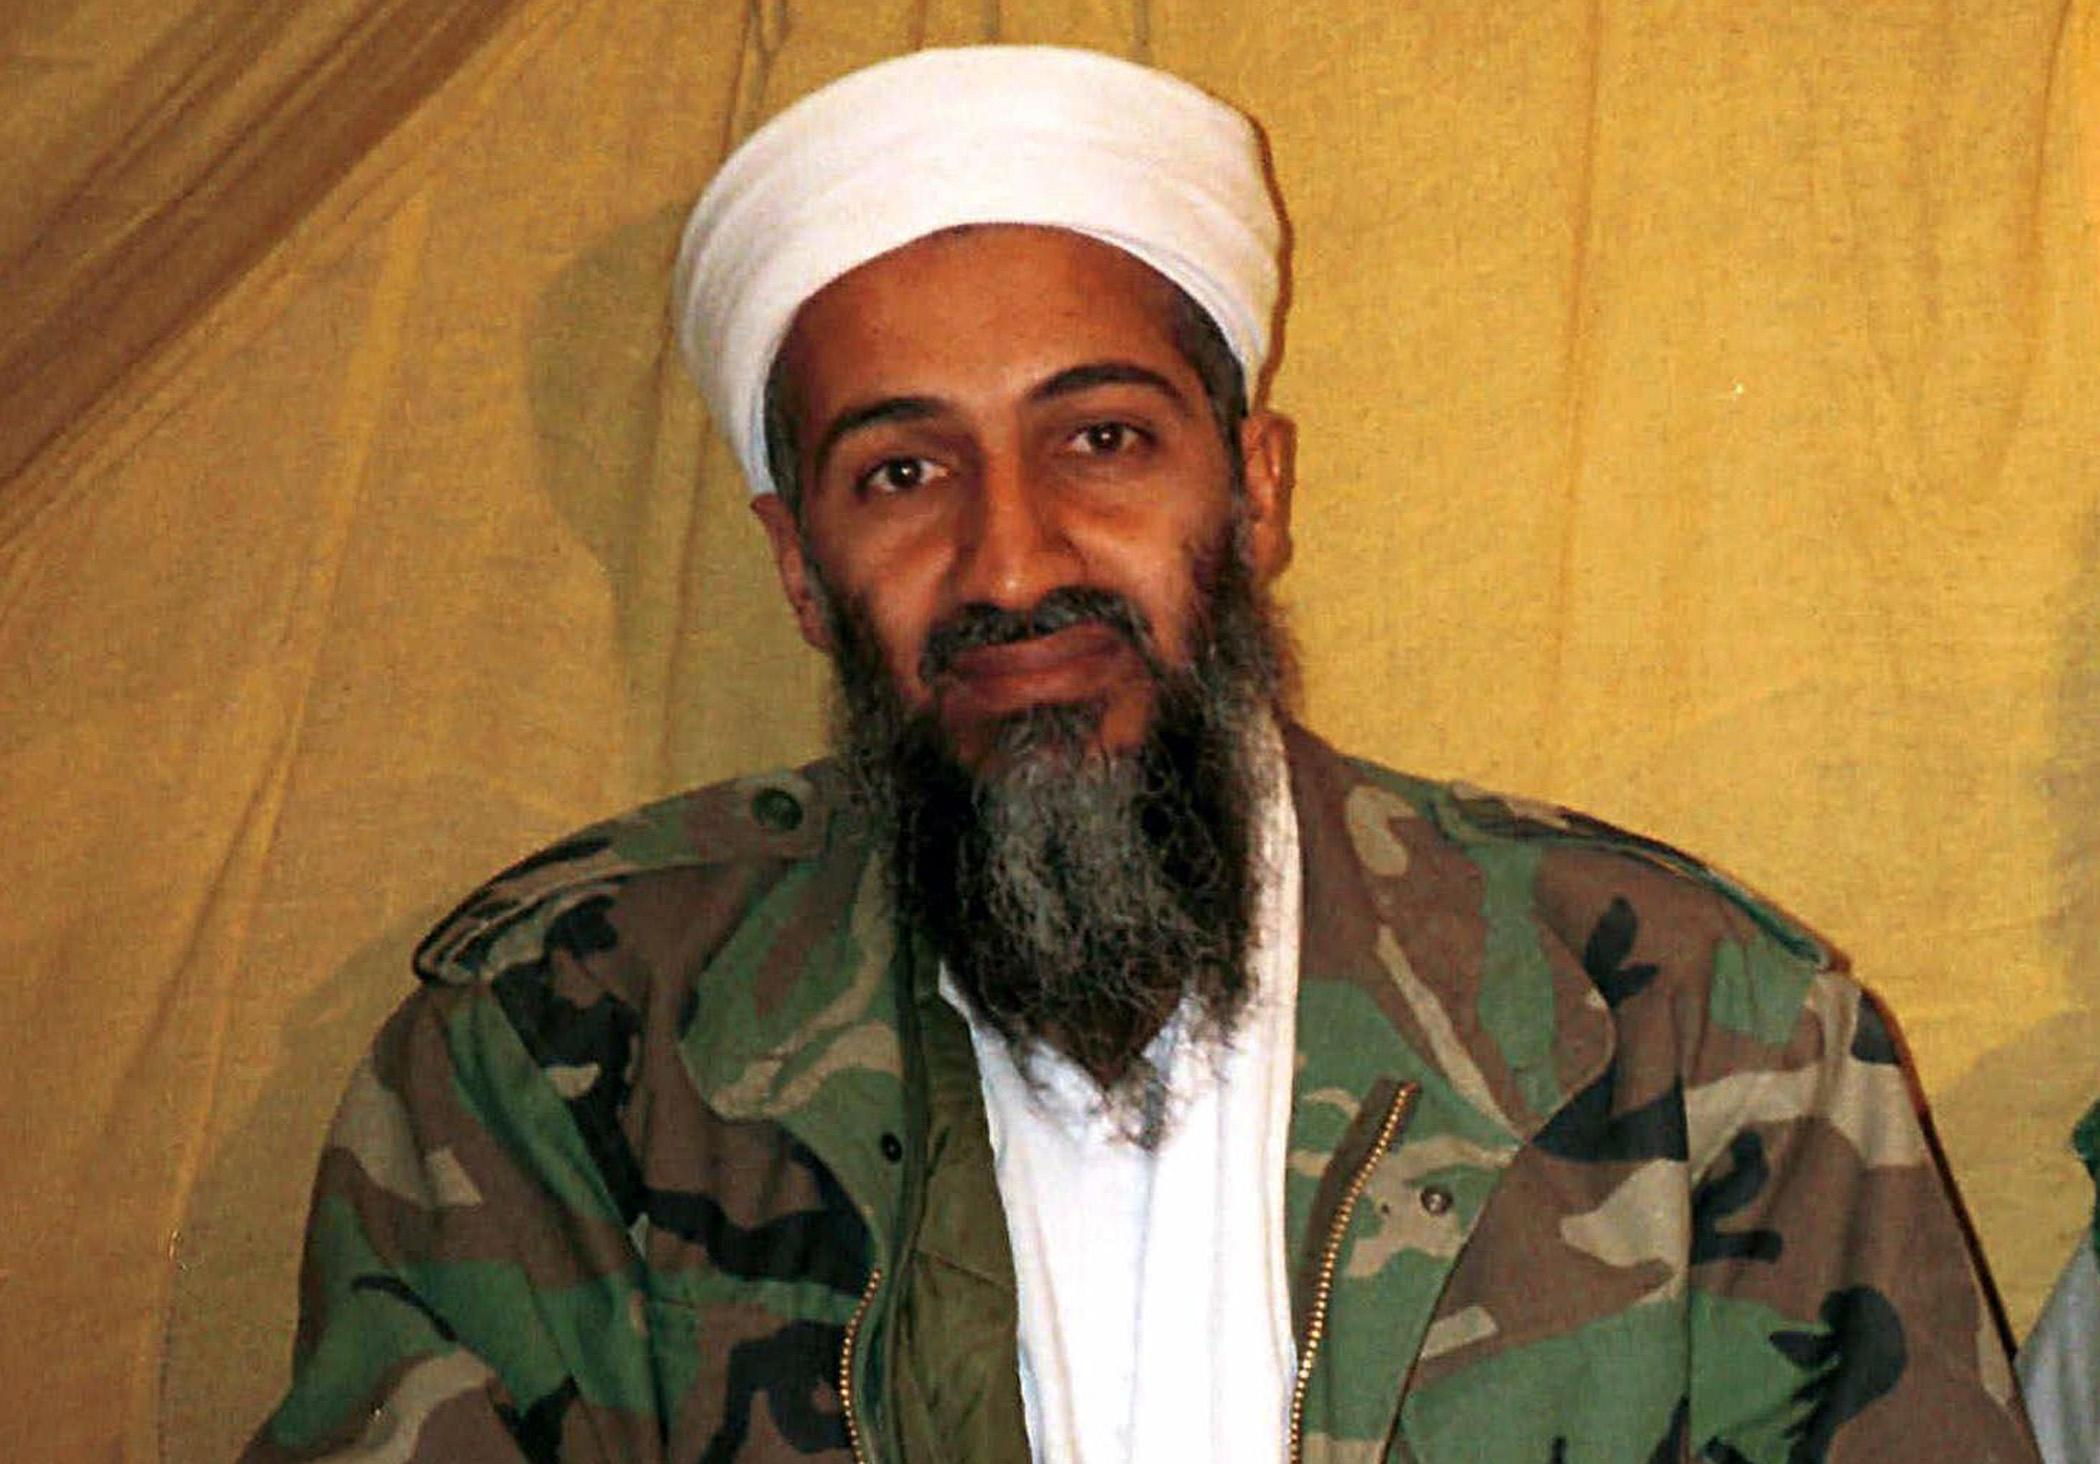 The CIA publishes Steam account data of Osama Bin Laden